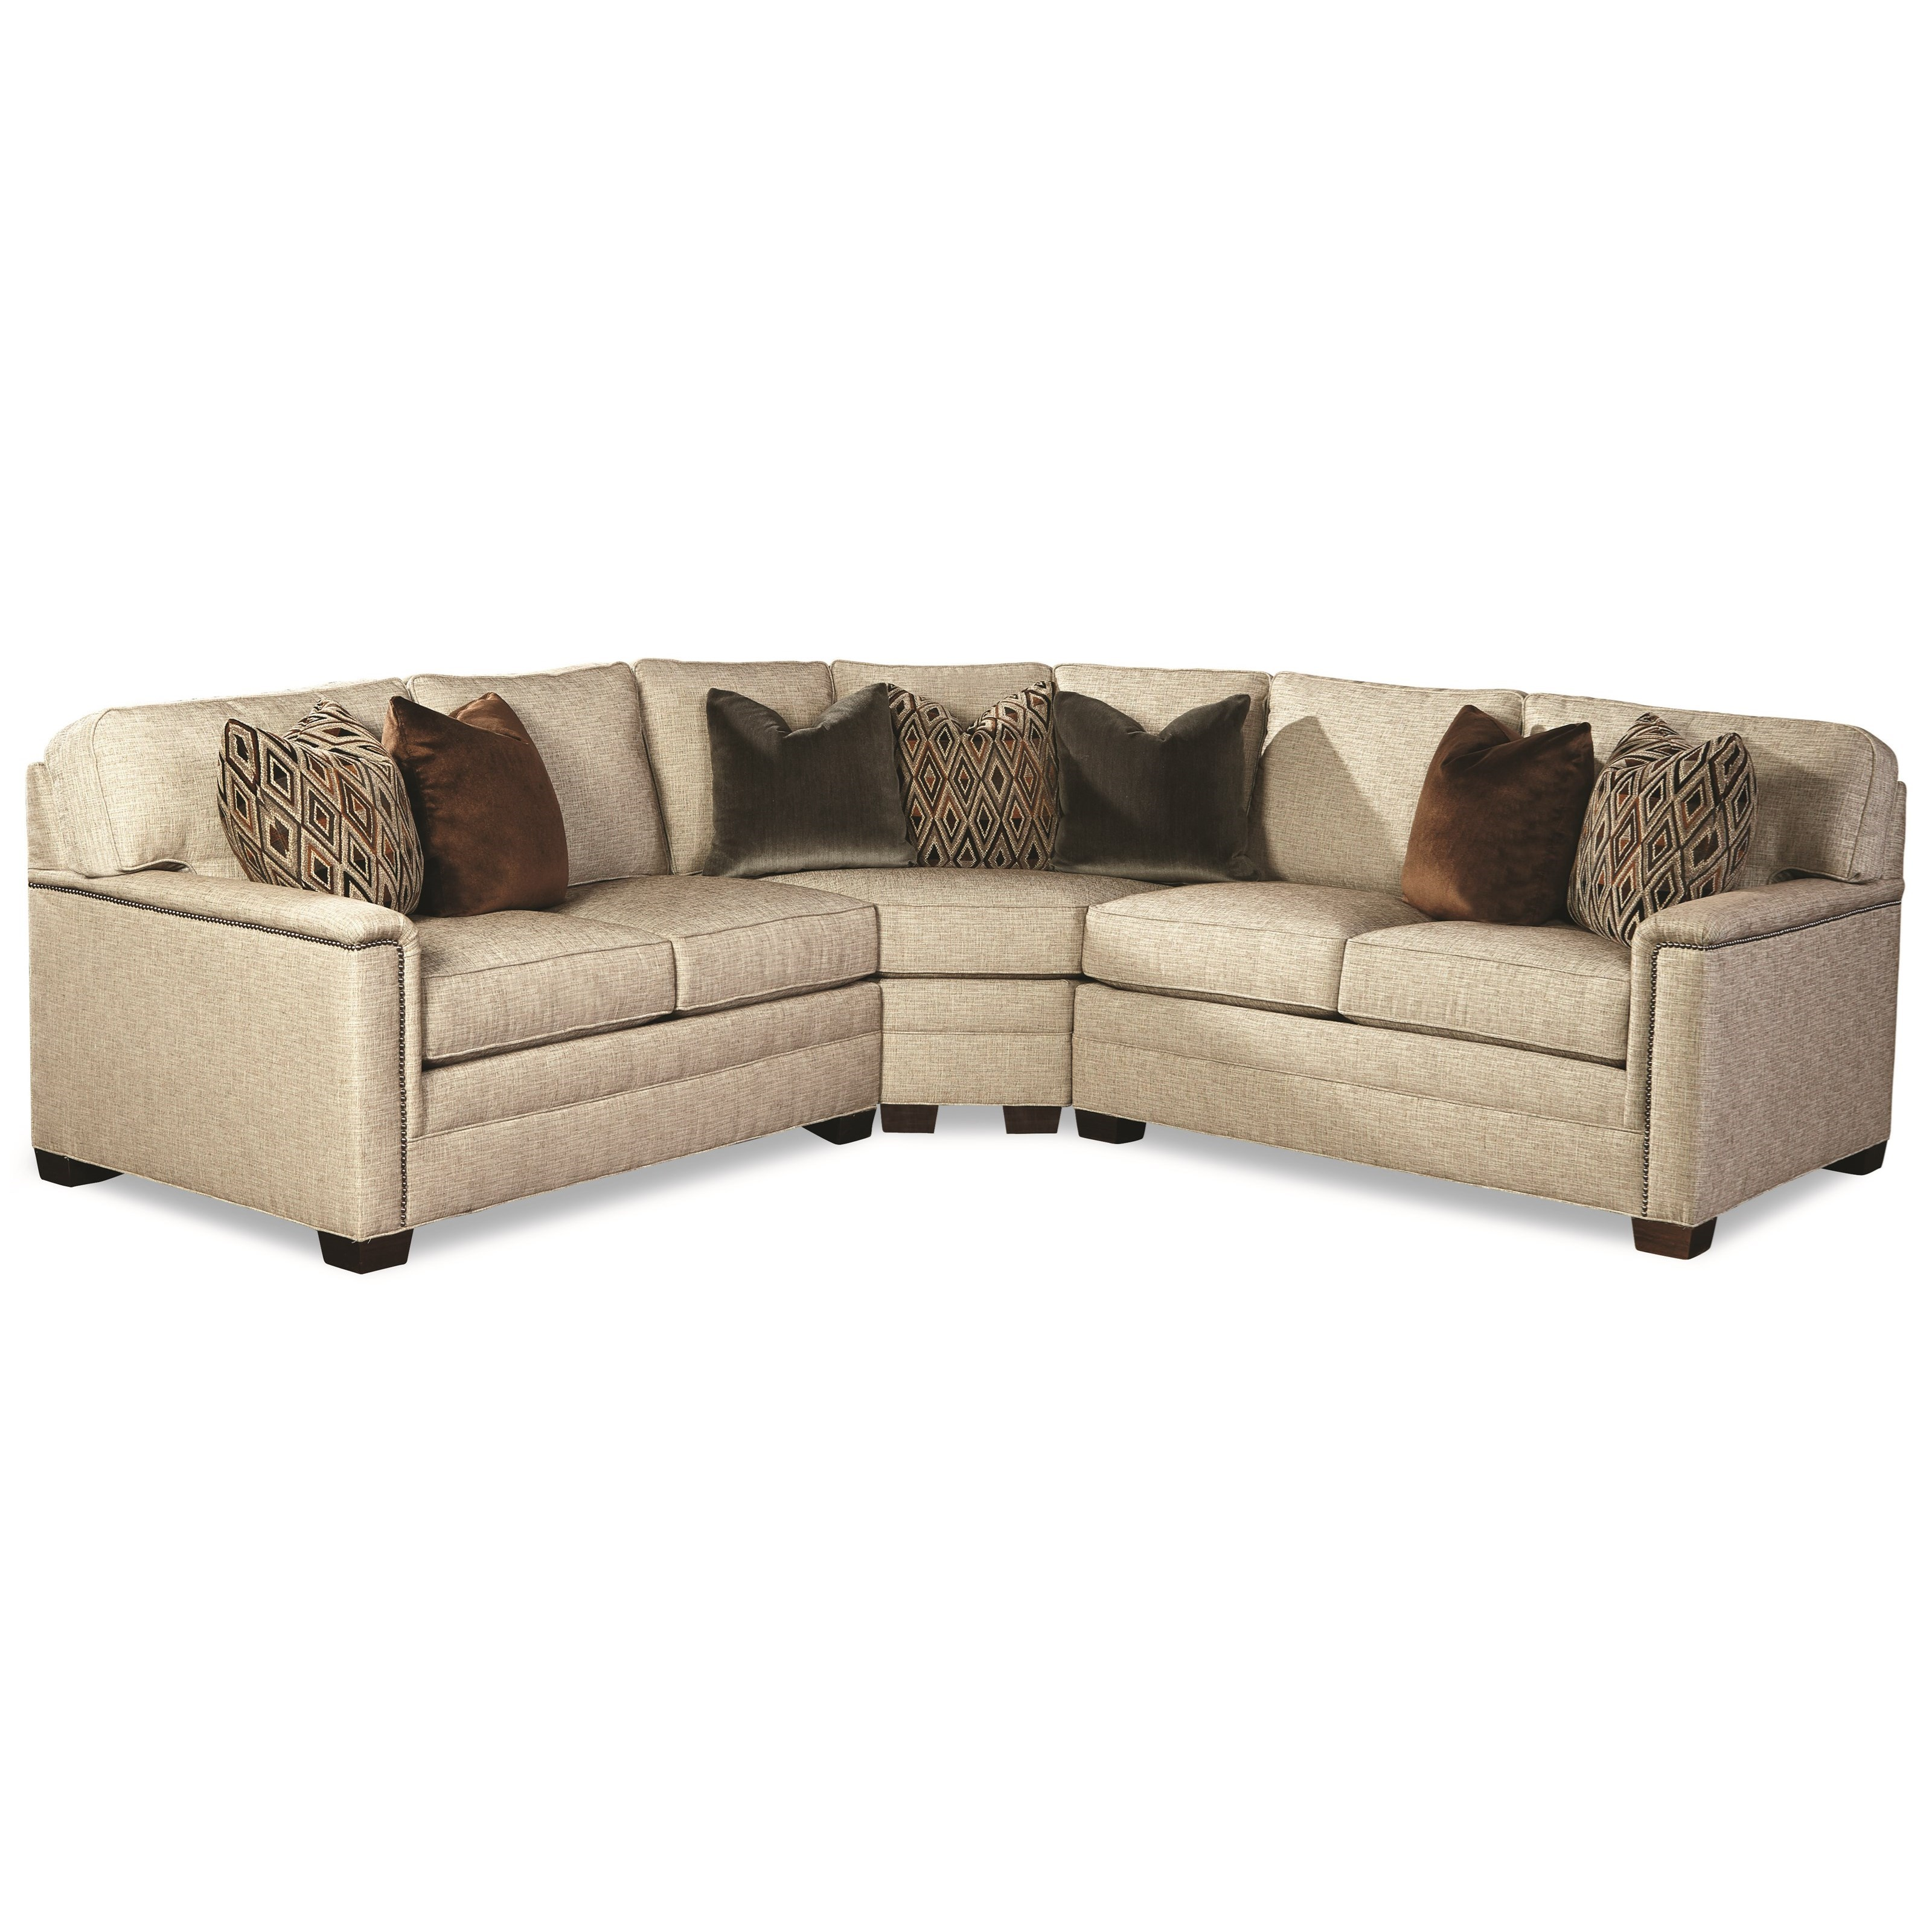 2062 Customizable Sectional Sofa by Huntington House at Baer's Furniture